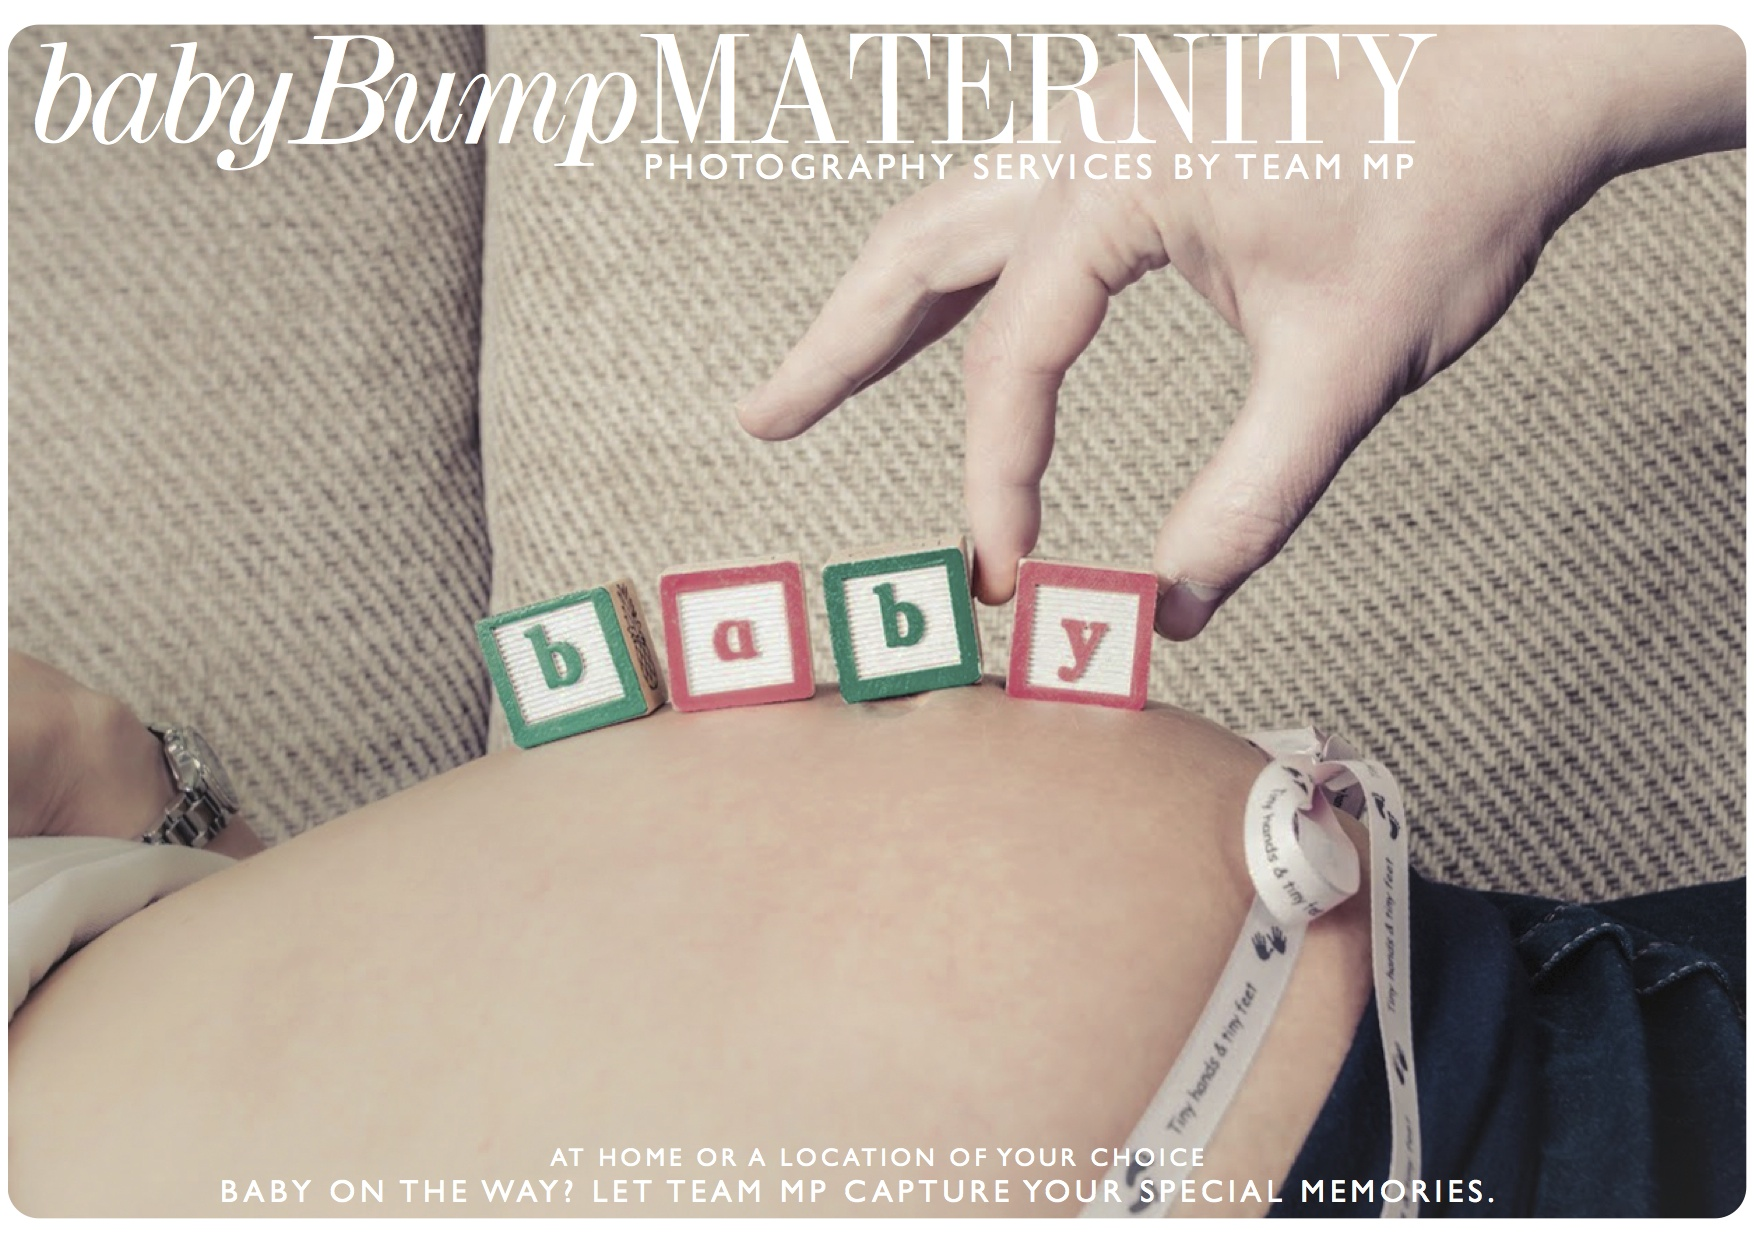 Maternity 'My baby bump'   click the image above to view additional information.